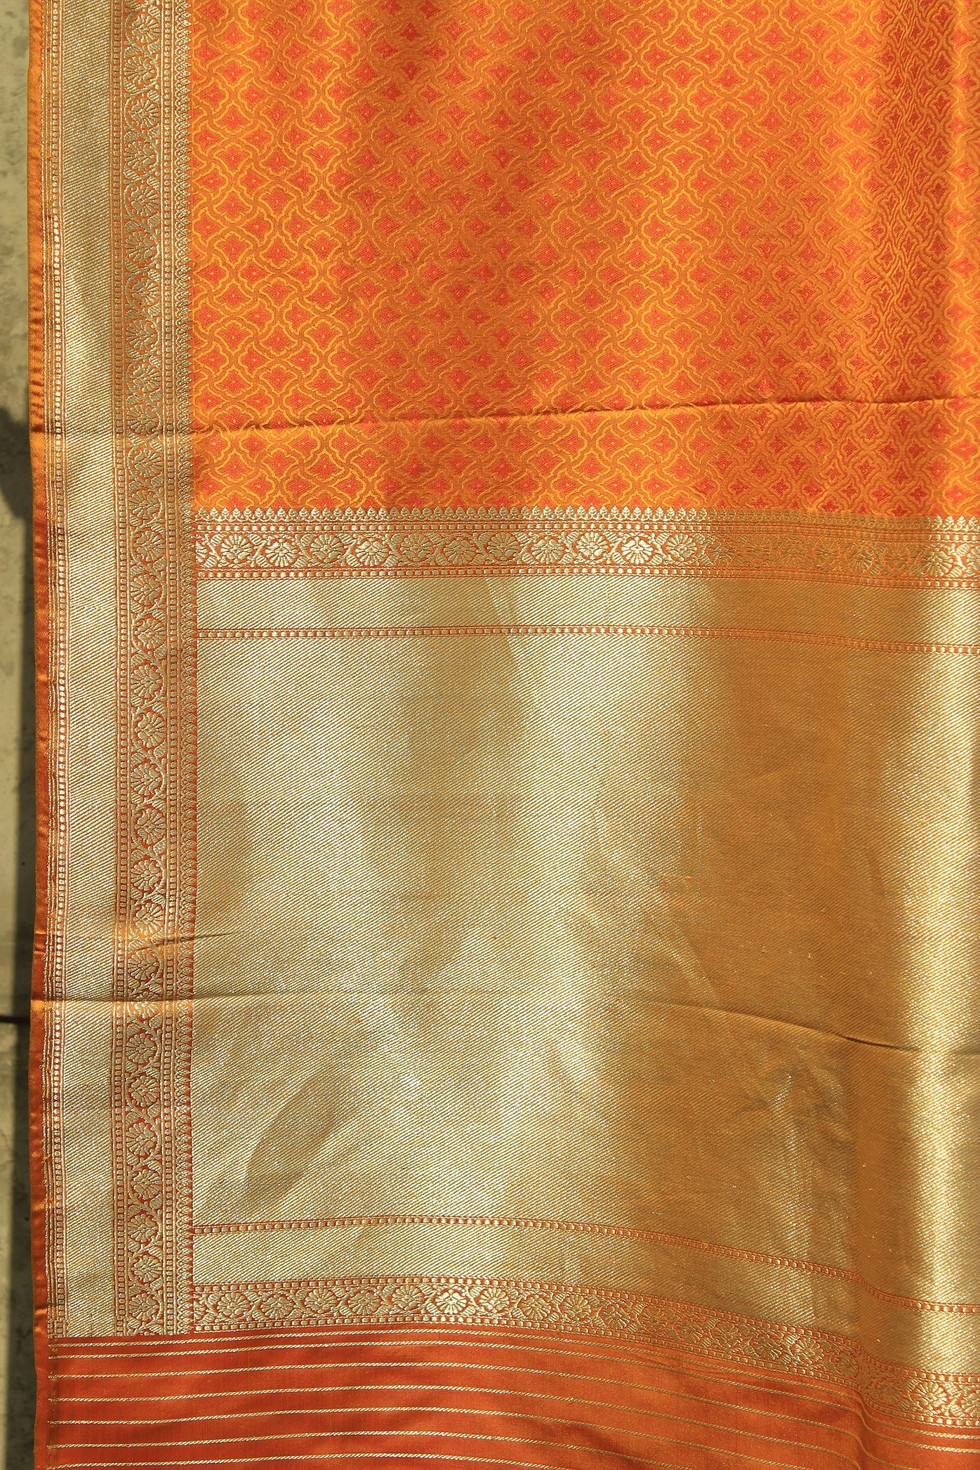 Amb- 082/14 SL- 2 - Through shuttle woven with multiple weft in body